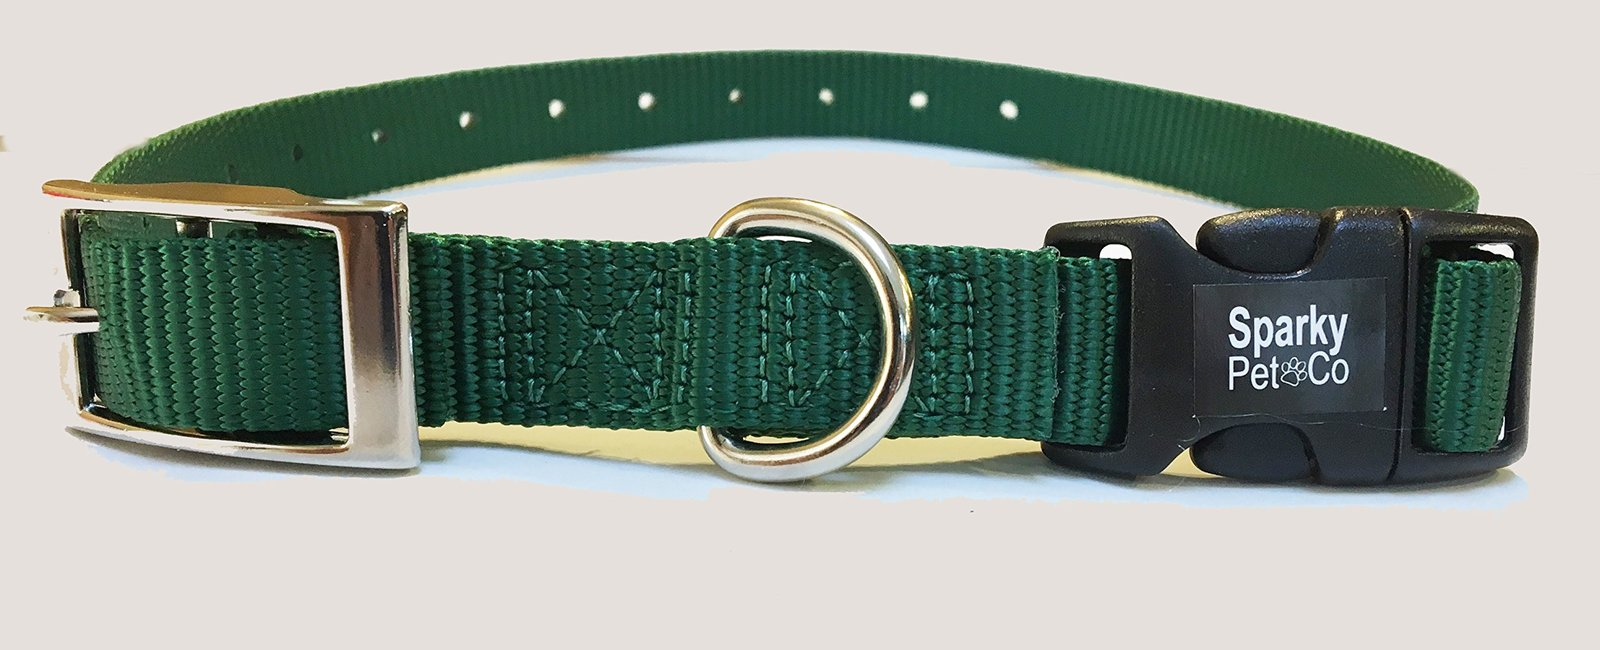 "Sparky PetCo E Collar Compatible 3/4"" Nylon Mini Double Buckle Quick Snap Replac"